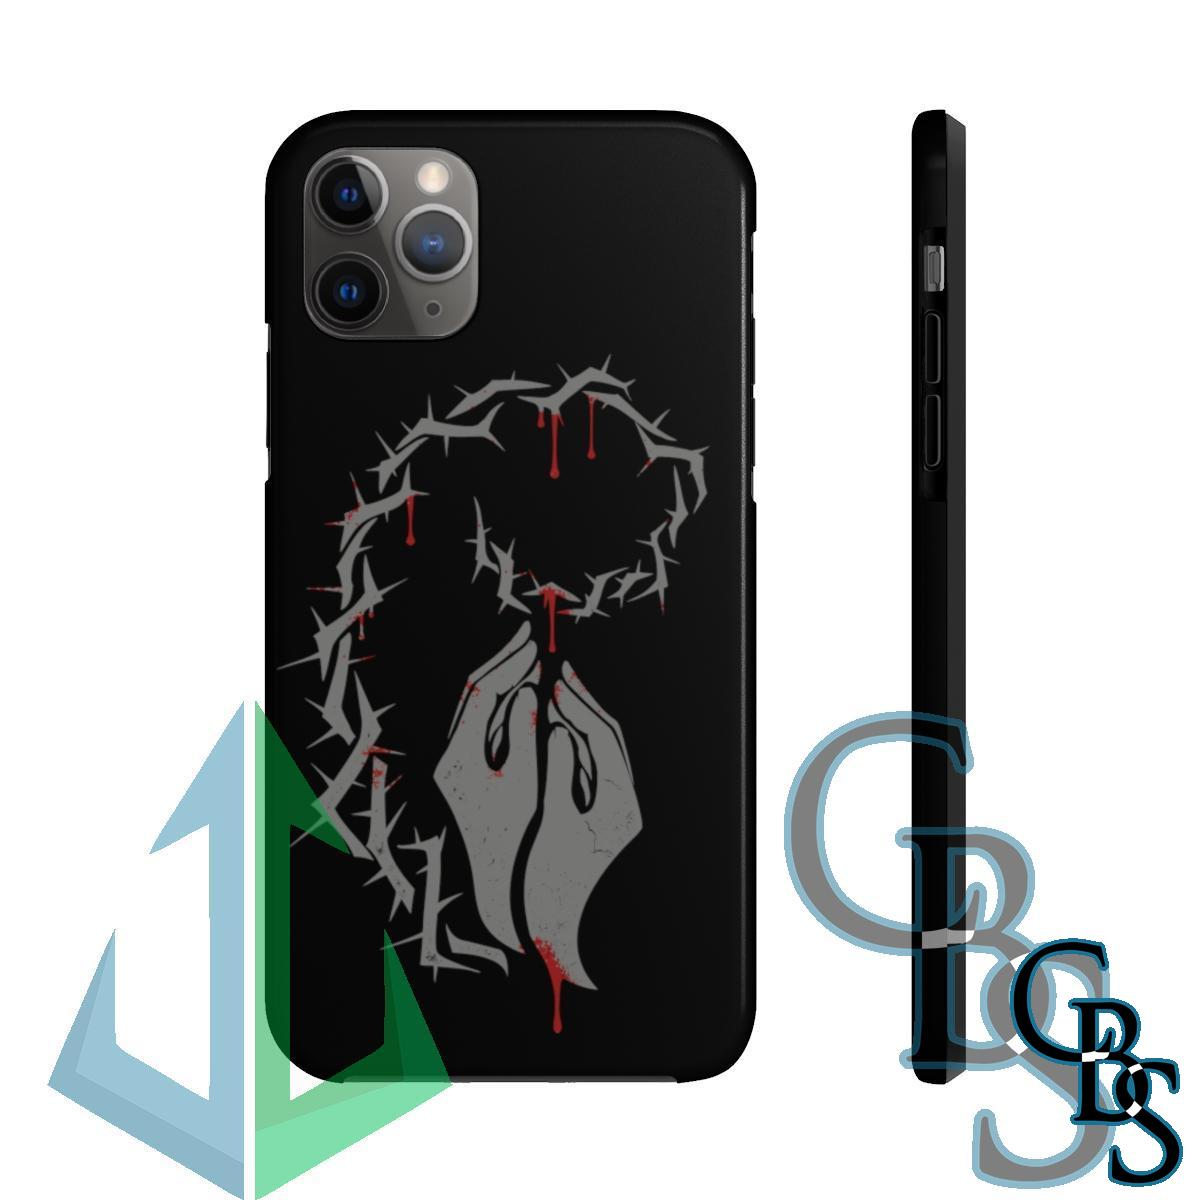 Blood on Our Hands Bleeding Hands (Meltdown) Tough iPhone Cases (iPhone 7/7 Plus, iPhone 8/8 Plus, iPhone X, XS, XR, iPhone 11, 11 Pro, 11 Pro Max)